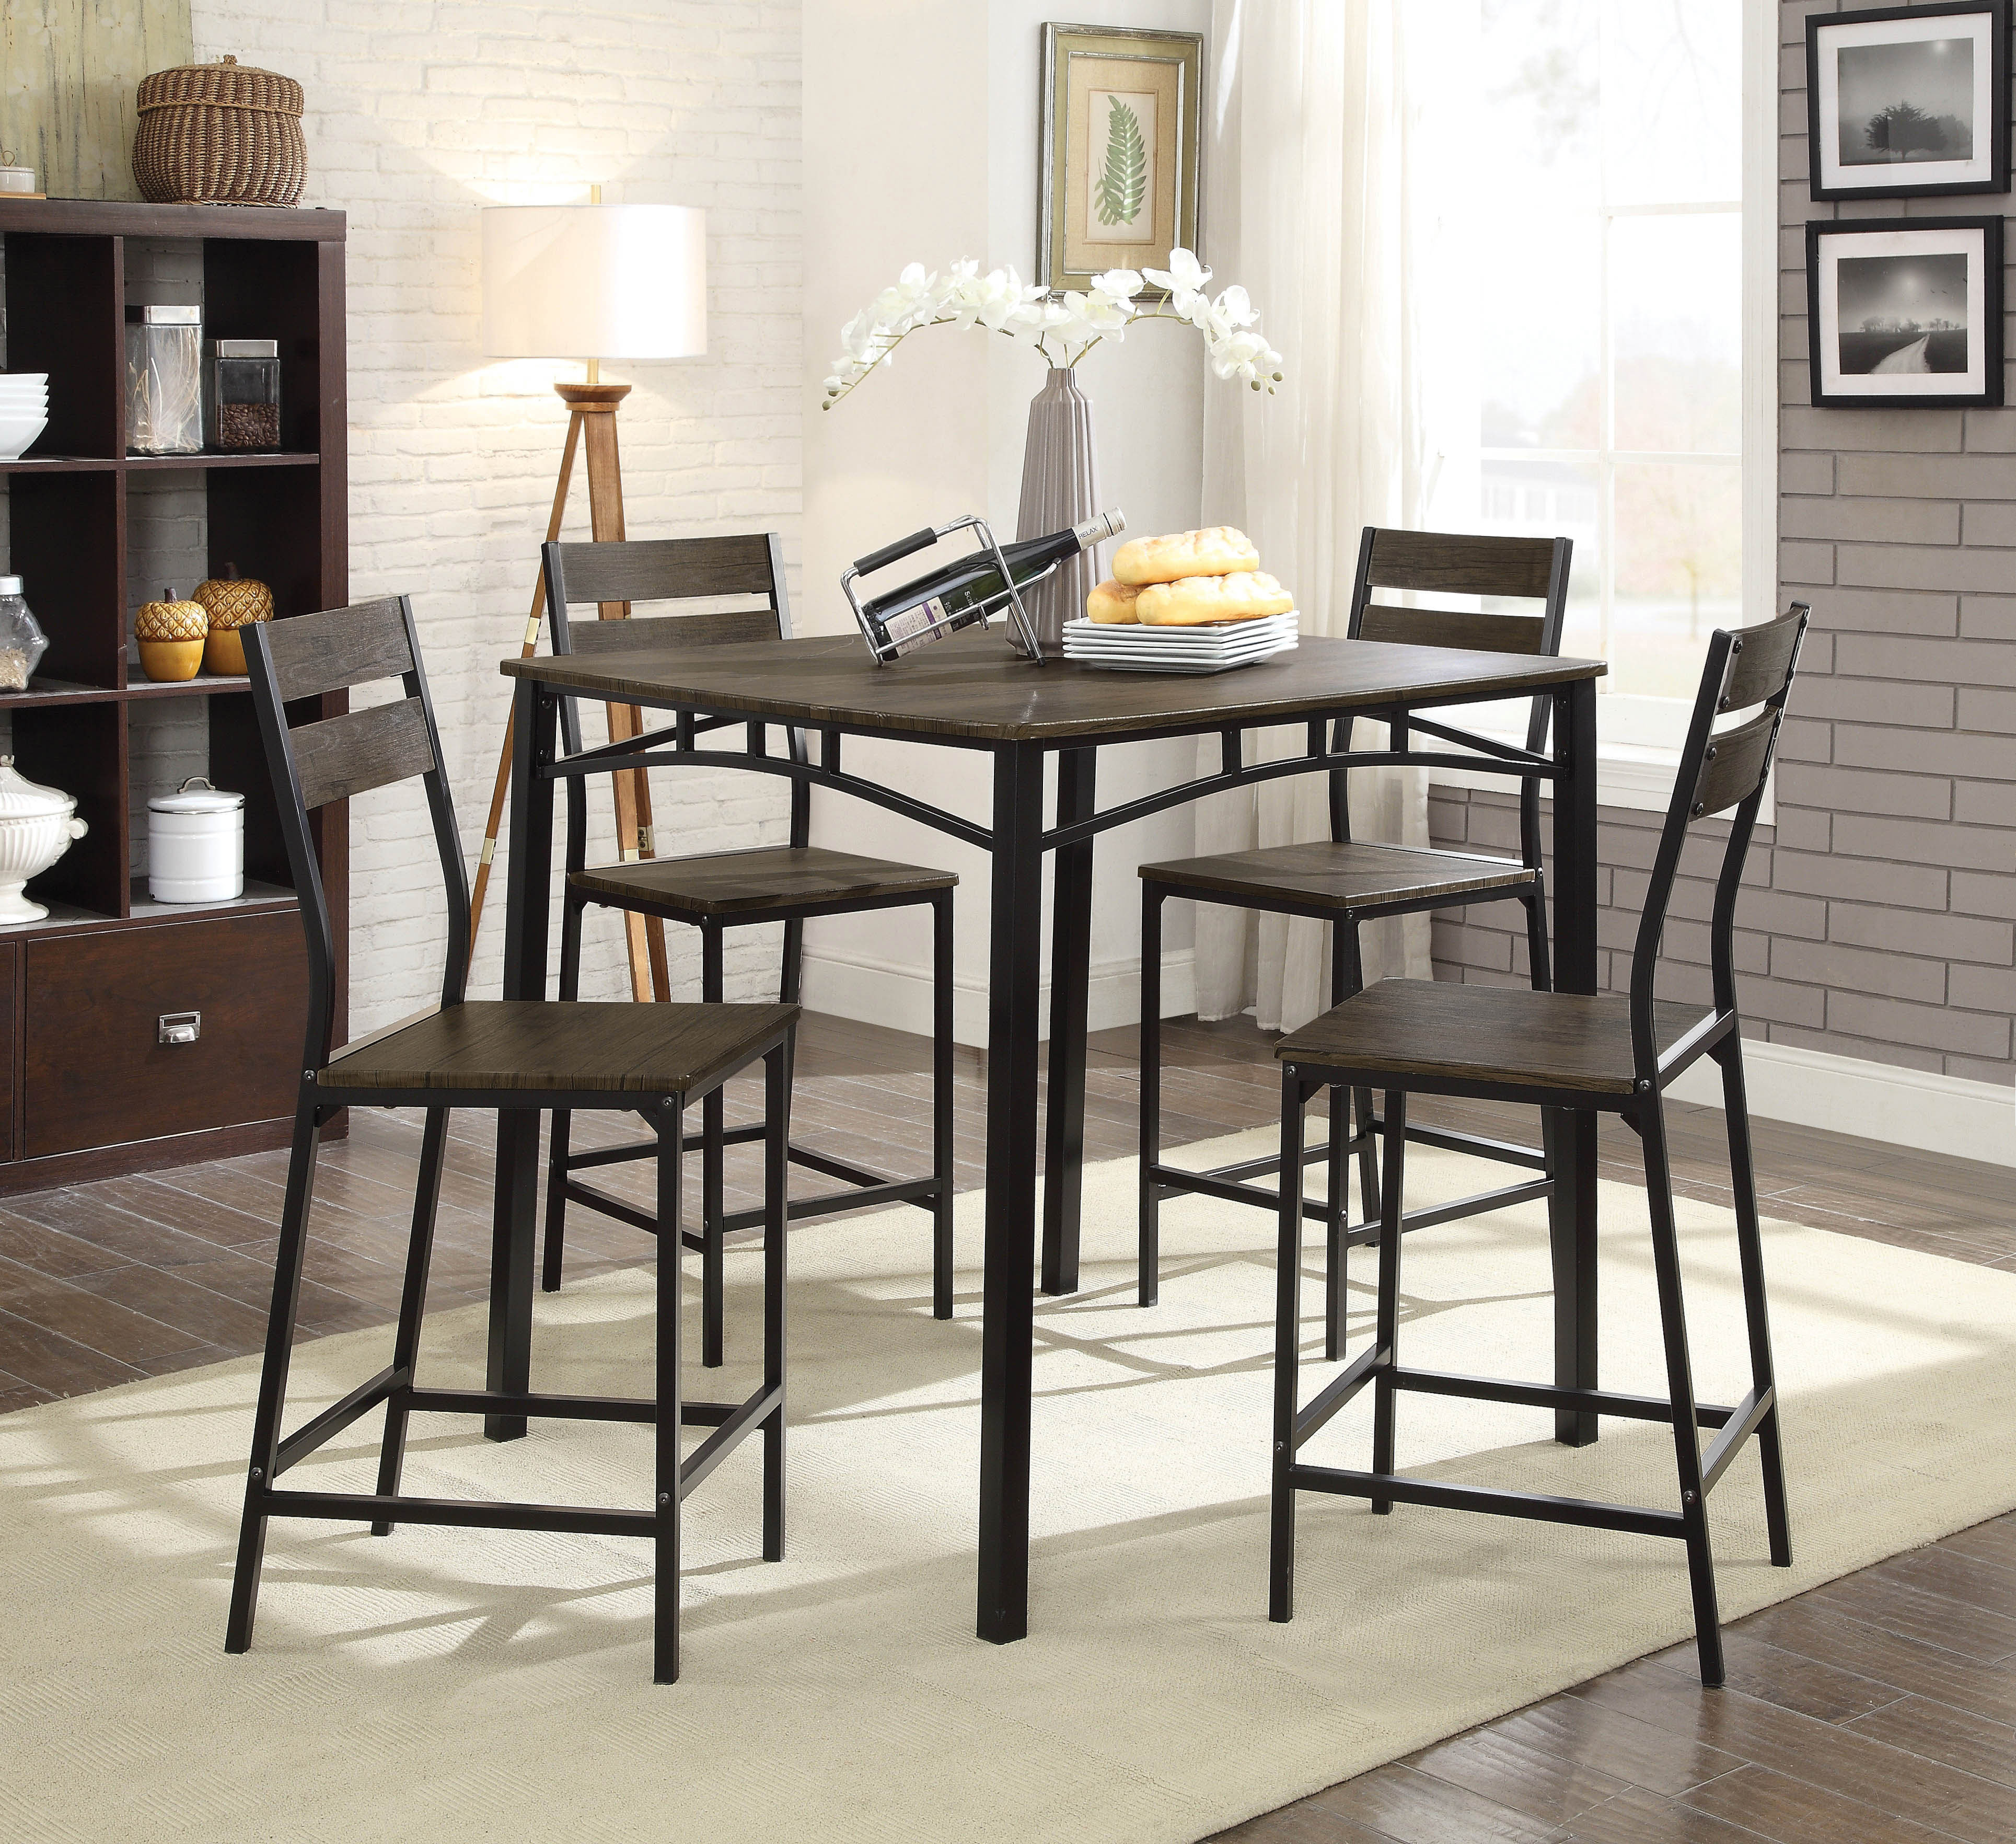 Inspiration about Widely Used Autberry 5 Piece Dining Sets With Regard To Gracie Oaks Autberry 5 Piece Pub Table Set (#2 of 20)